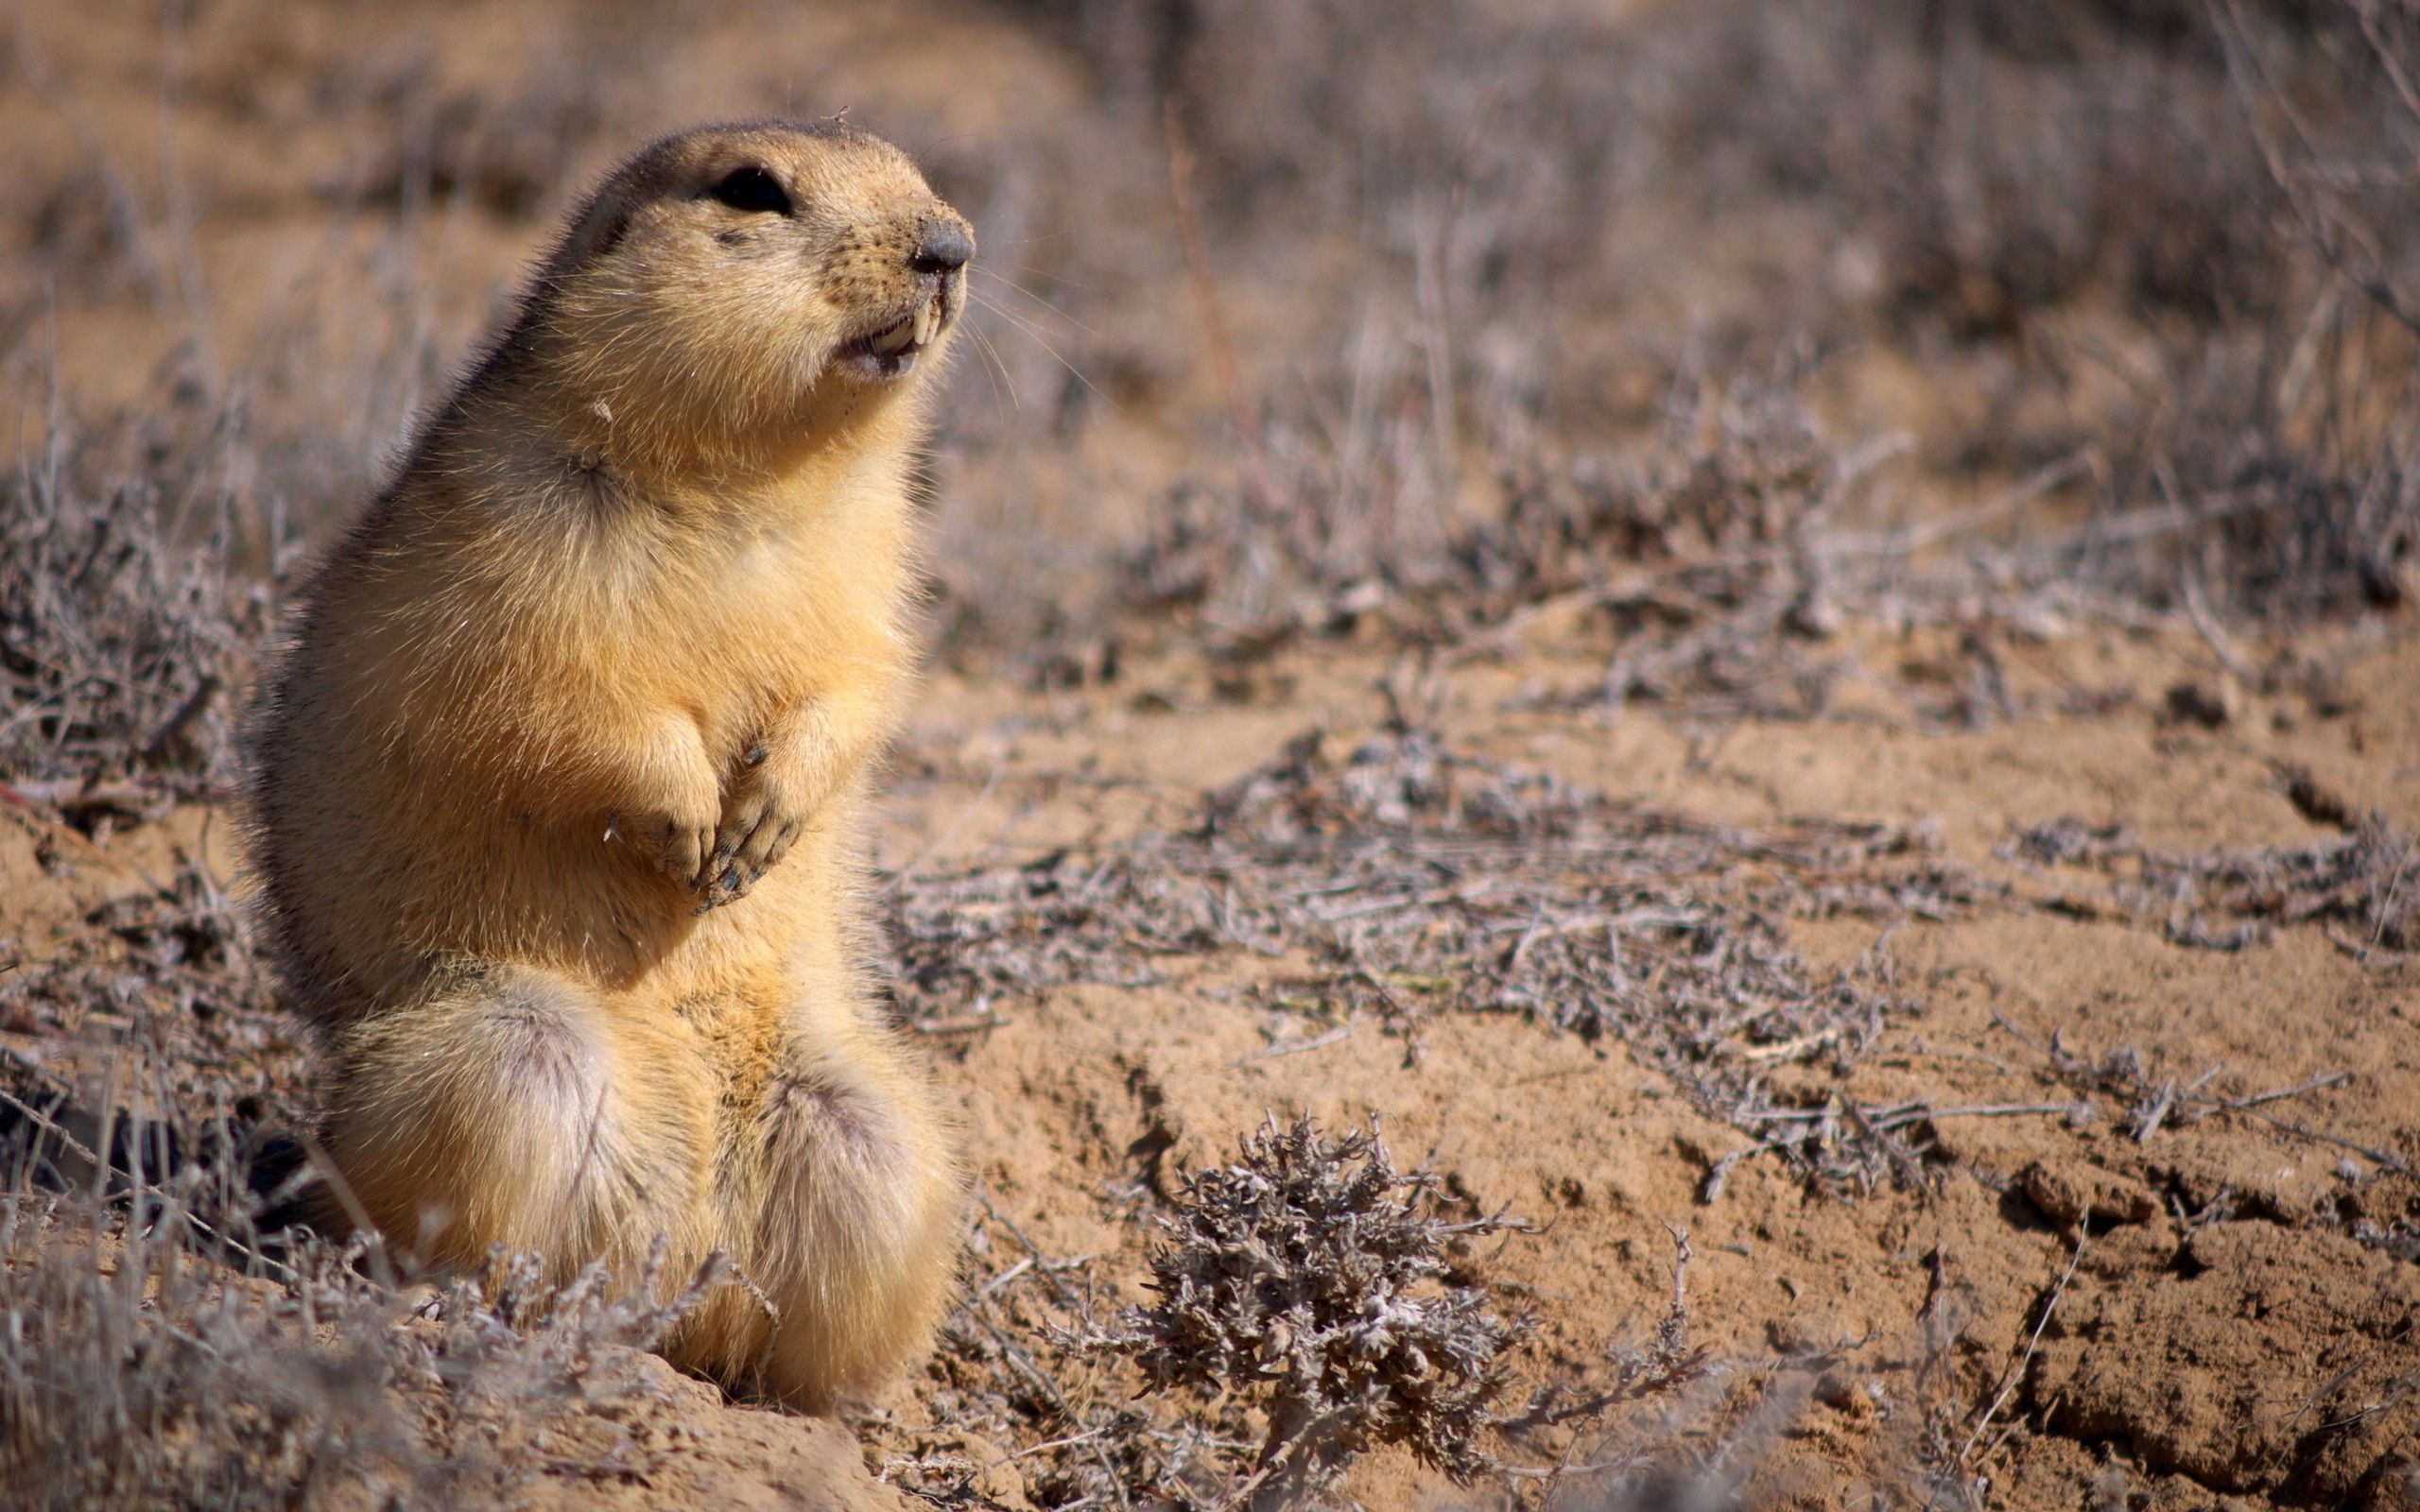 154997 download wallpaper Animals, Marmot, Grass, Mud, Dirt screensavers and pictures for free